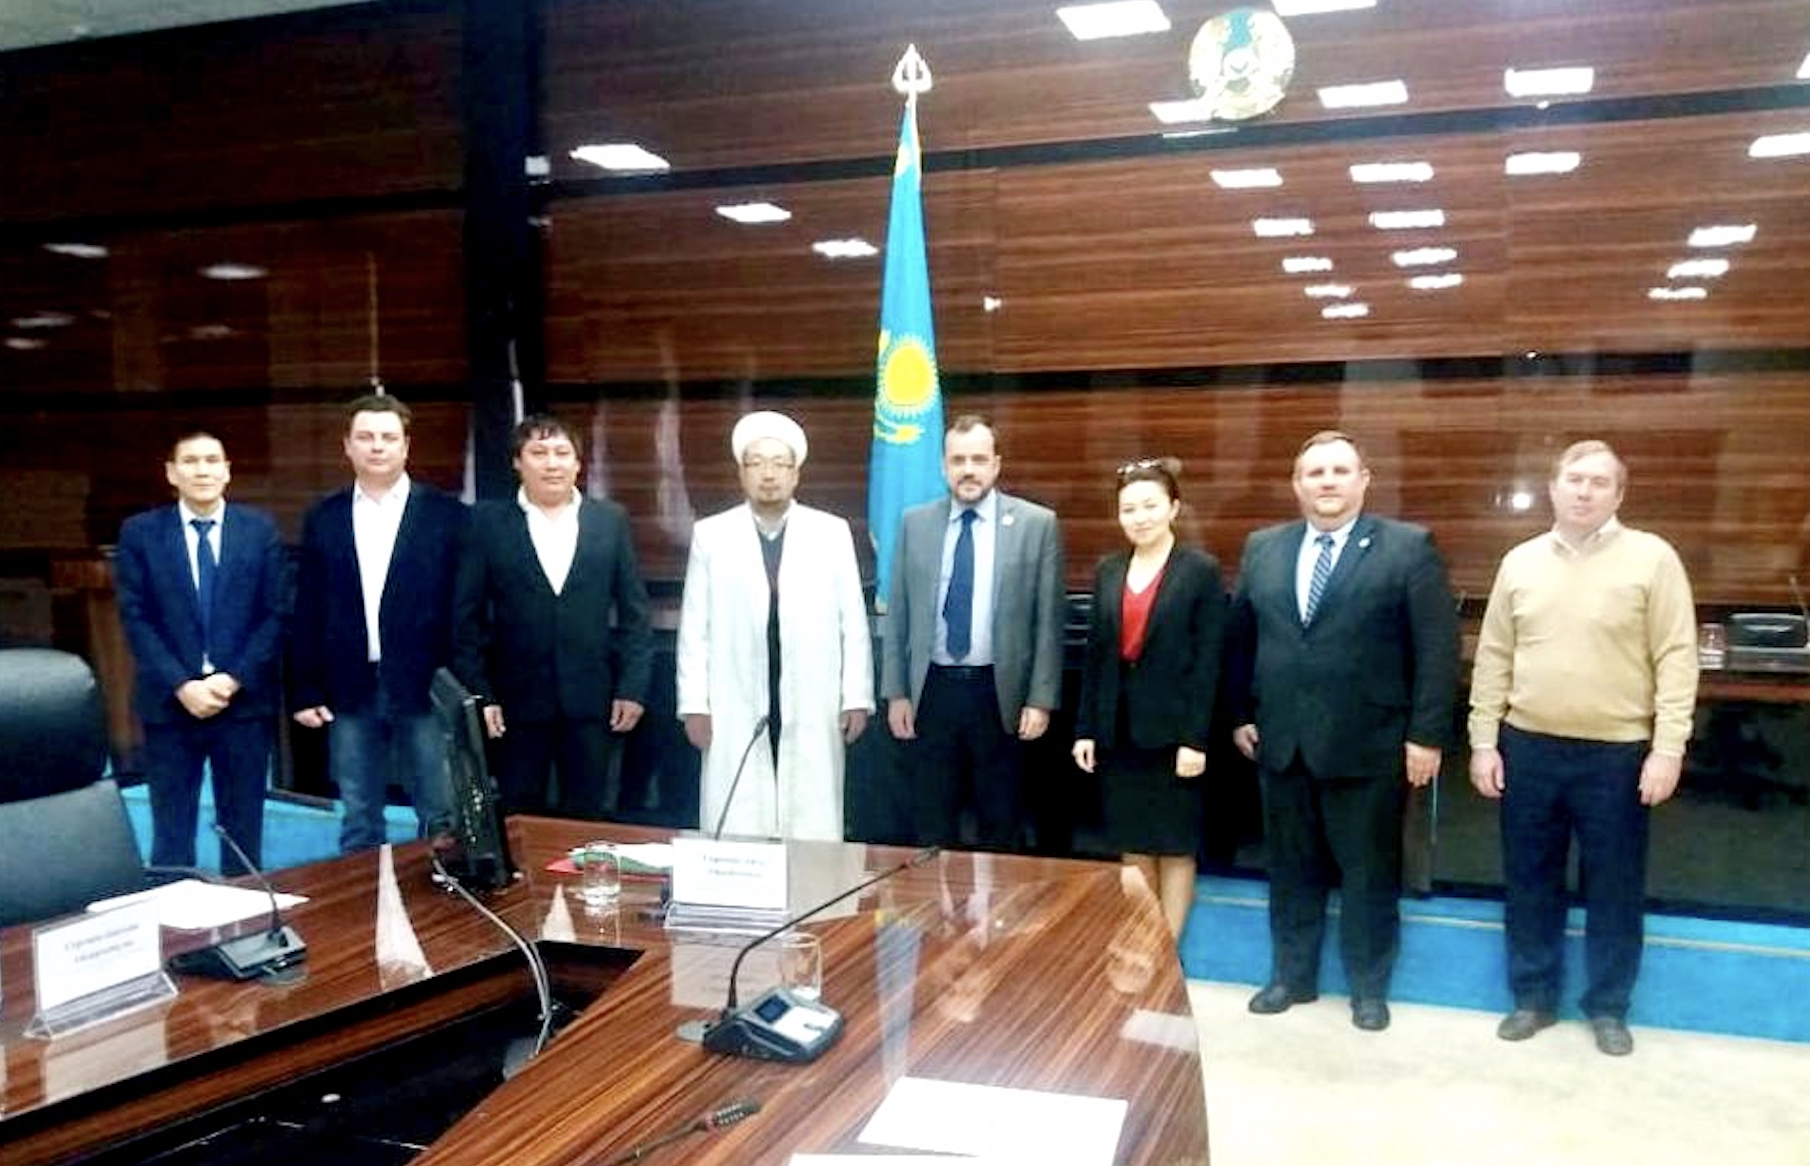 """A PRE ROUNDTABLE EVENT IN SHYMKENT, KAZAKHSTAN  With acute knowledge of the challenging religious climate in the city of Shymkent, Kazakhstan, LYNC successfully spearheaded the first multi-faith roundtable bringing together local government and religious leadership for safe space conversation. It was a substantial step toward multi-faith and government relations as reported by Mr. Kusack.  The Kazakhstan Embassy in US helped LYNC to set up the meeting and invite the government officials and local imams. The government was represented by Aigul Sarseyeva, Deputy Head of the Department of Internal Policy and Head of the Department of Religious Affairs of Shymkent. There were two local imams and three evangelical pastors, president for AROK Aleksandr Klyushev and three mayor assistances.  The agenda was to learn and discuss the following topics:  - The history of relations between Kazakh Embassy and IRF Roundtable in Washington DC, including previous IRFR delegation visits and the conferences organized by IGE  - Declaration VI Congress of the Leaders of the World and Traditional Religious with the emphasis on religious literacy and tolerance.  - Possible larger roundtable with more diverse religious groups in the middle of 2019. The socially important or educational project that would include government and different religious communities would follow the roundtable.  Mr. Kusack maintained a warmth and openness in the meeting and encouraged participants to do the same. One of the imams even said, """"I never had any concerns regarding the Baptist church that is next to my mosque."""" Ironically though, he never talks to the pastor of this church which underlined the necessity of our roundtable.  As a result of the roundtable, it was decided to continue the dialogue between Muslims and Christians and find what can be done together, including with the government."""